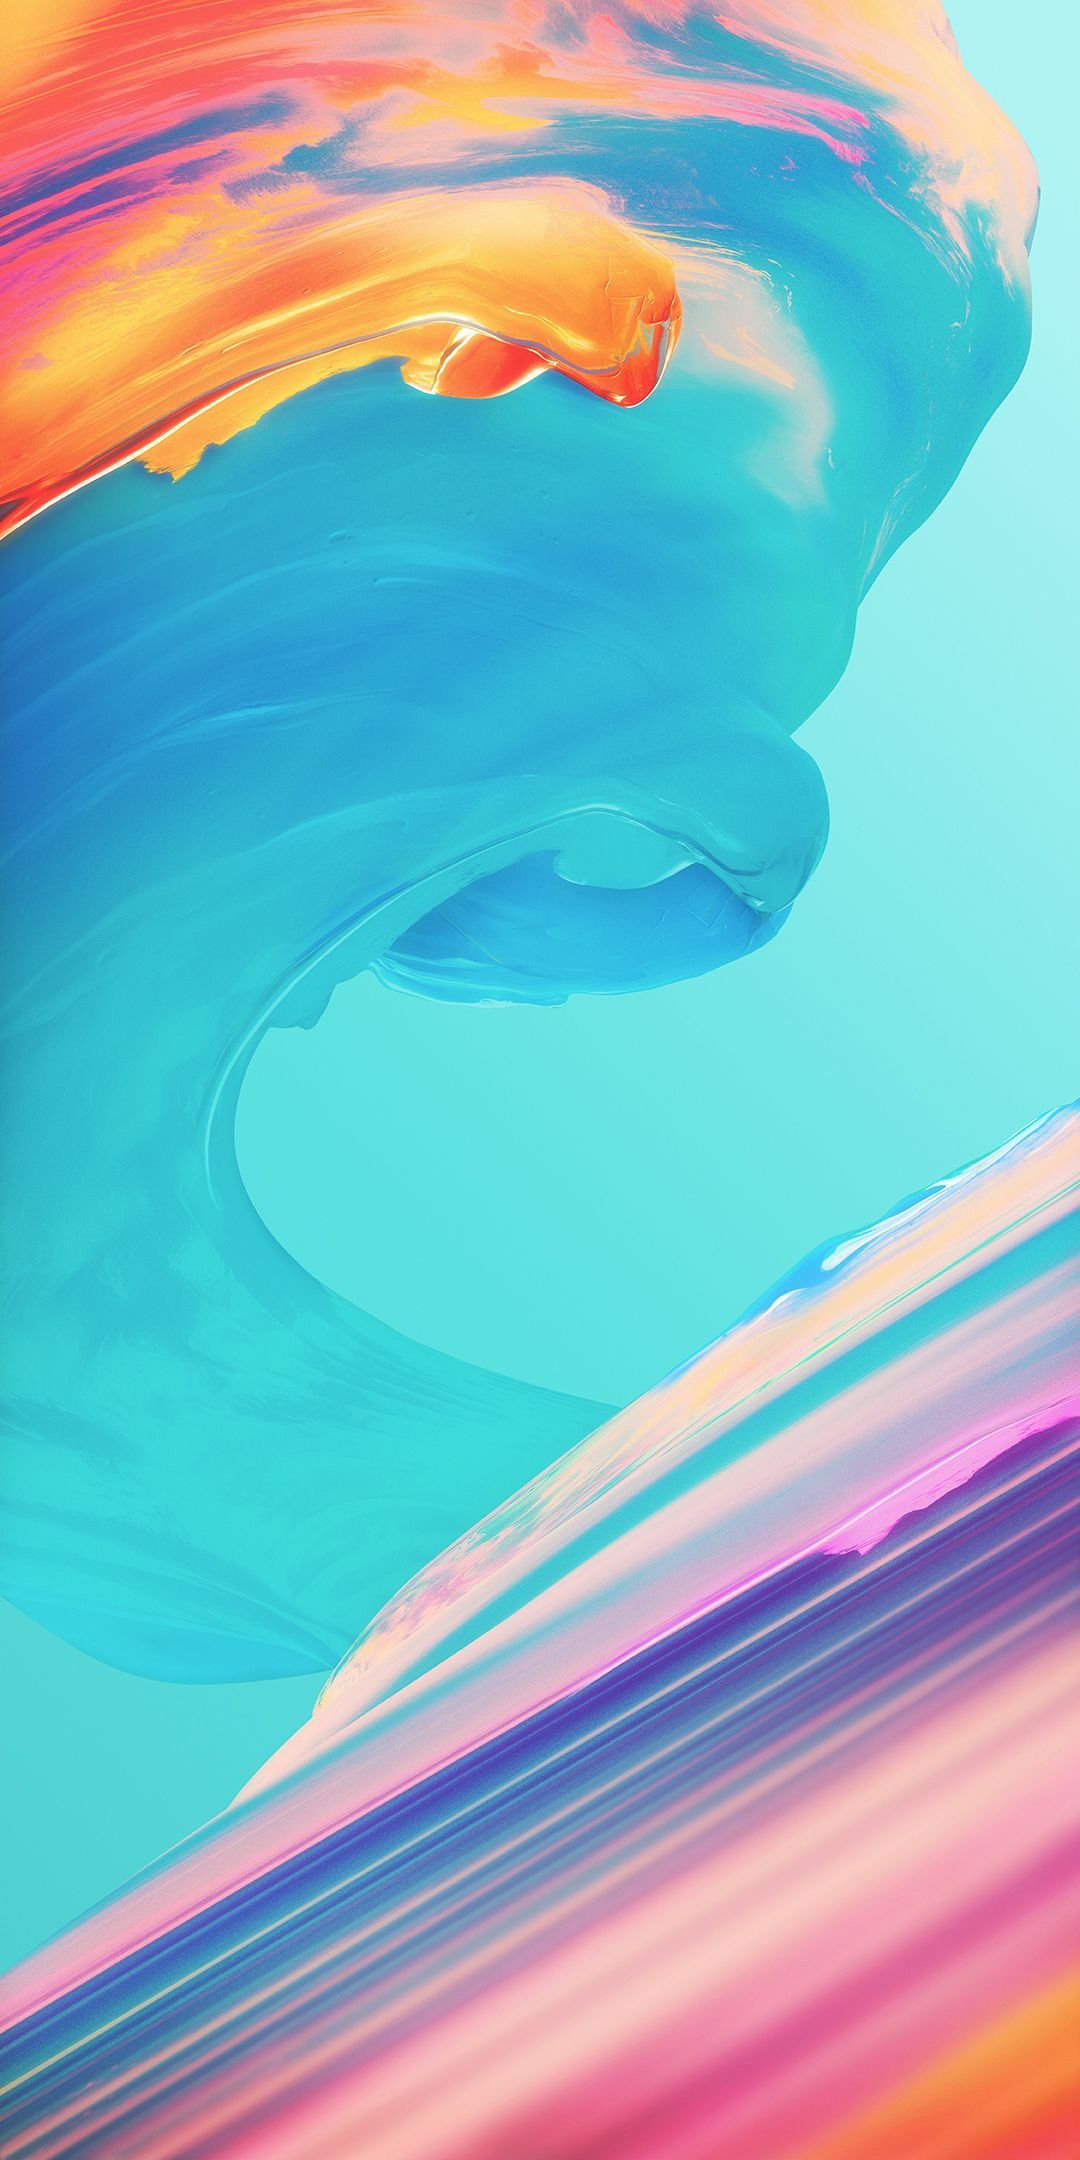 Download OnePlus 5T Wallpapers 5